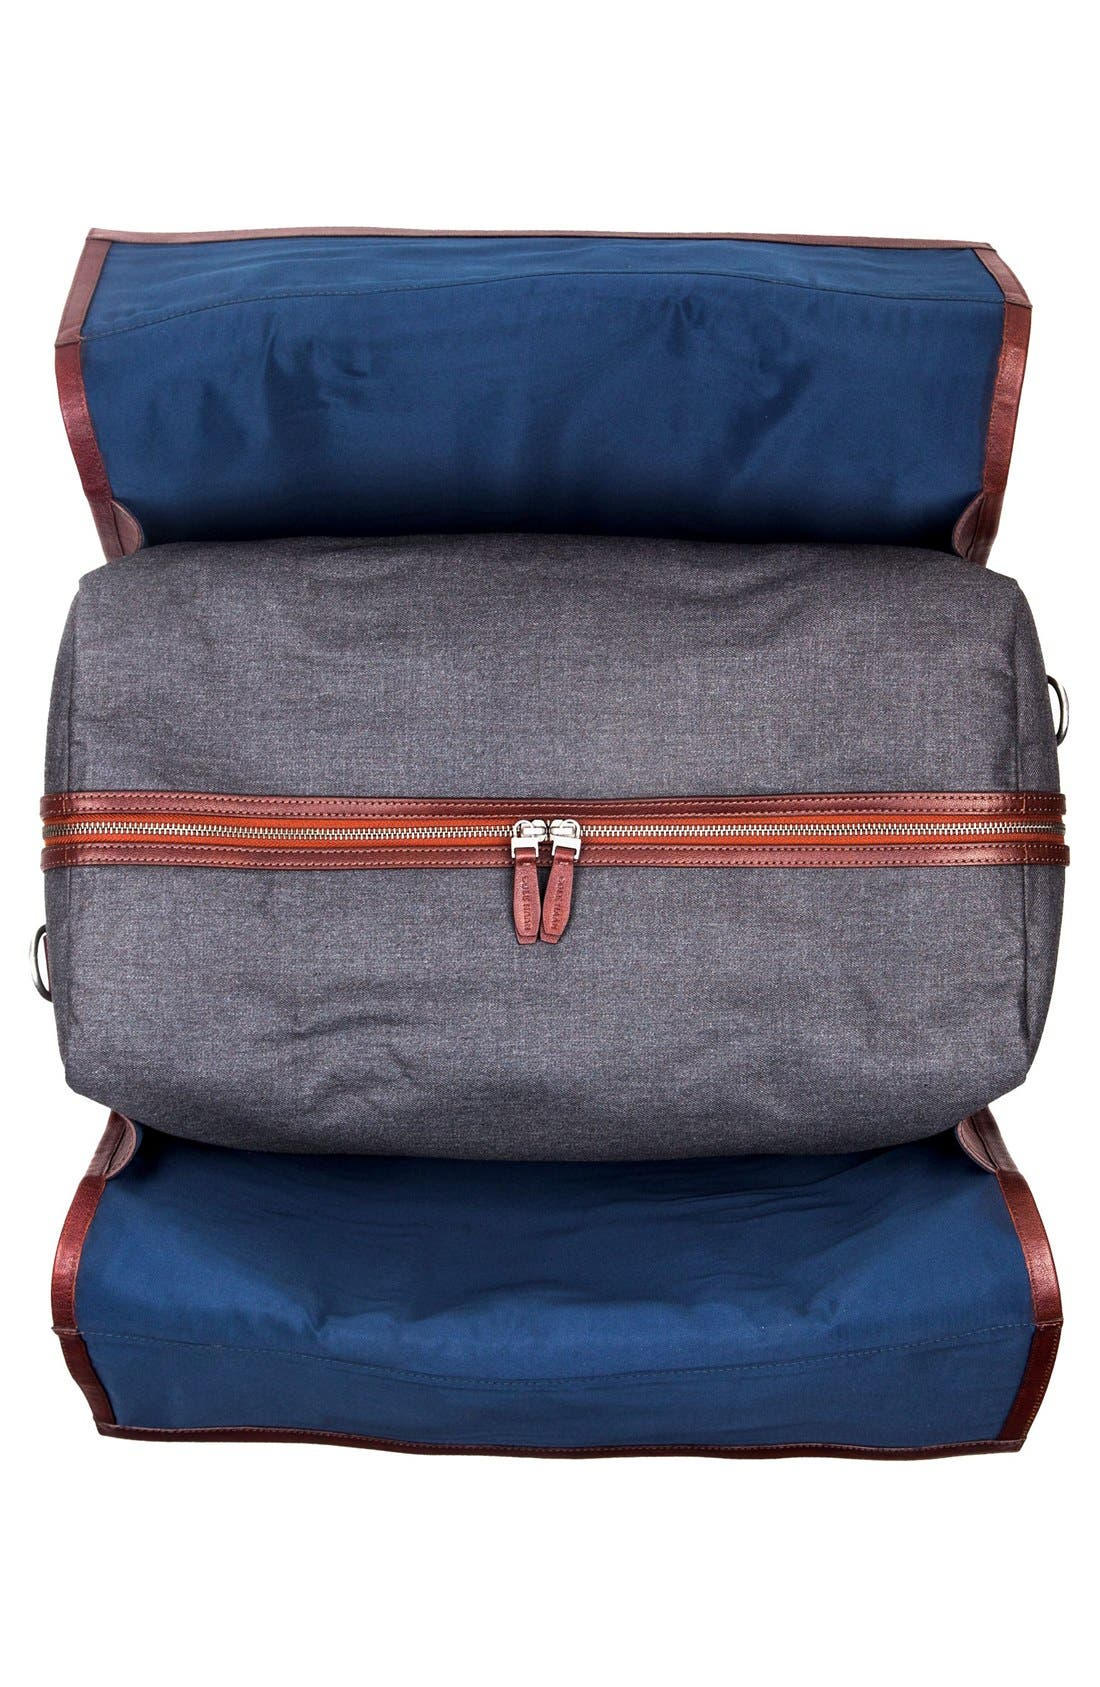 'Grafton' Duffel Bag,                             Alternate thumbnail 4, color,                             020